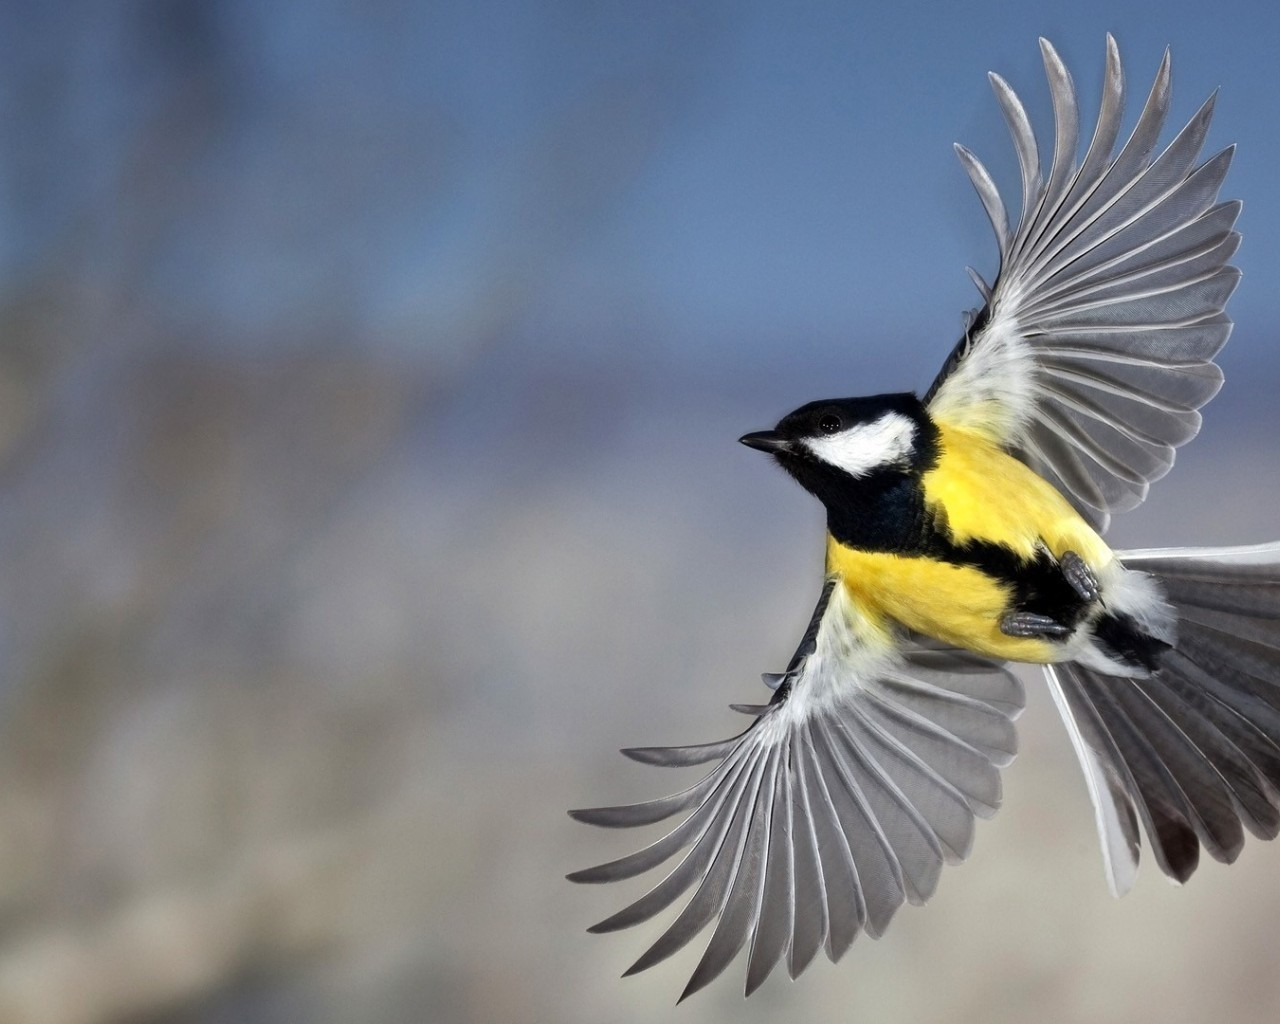 18080 download wallpaper Animals, Birds screensavers and pictures for free